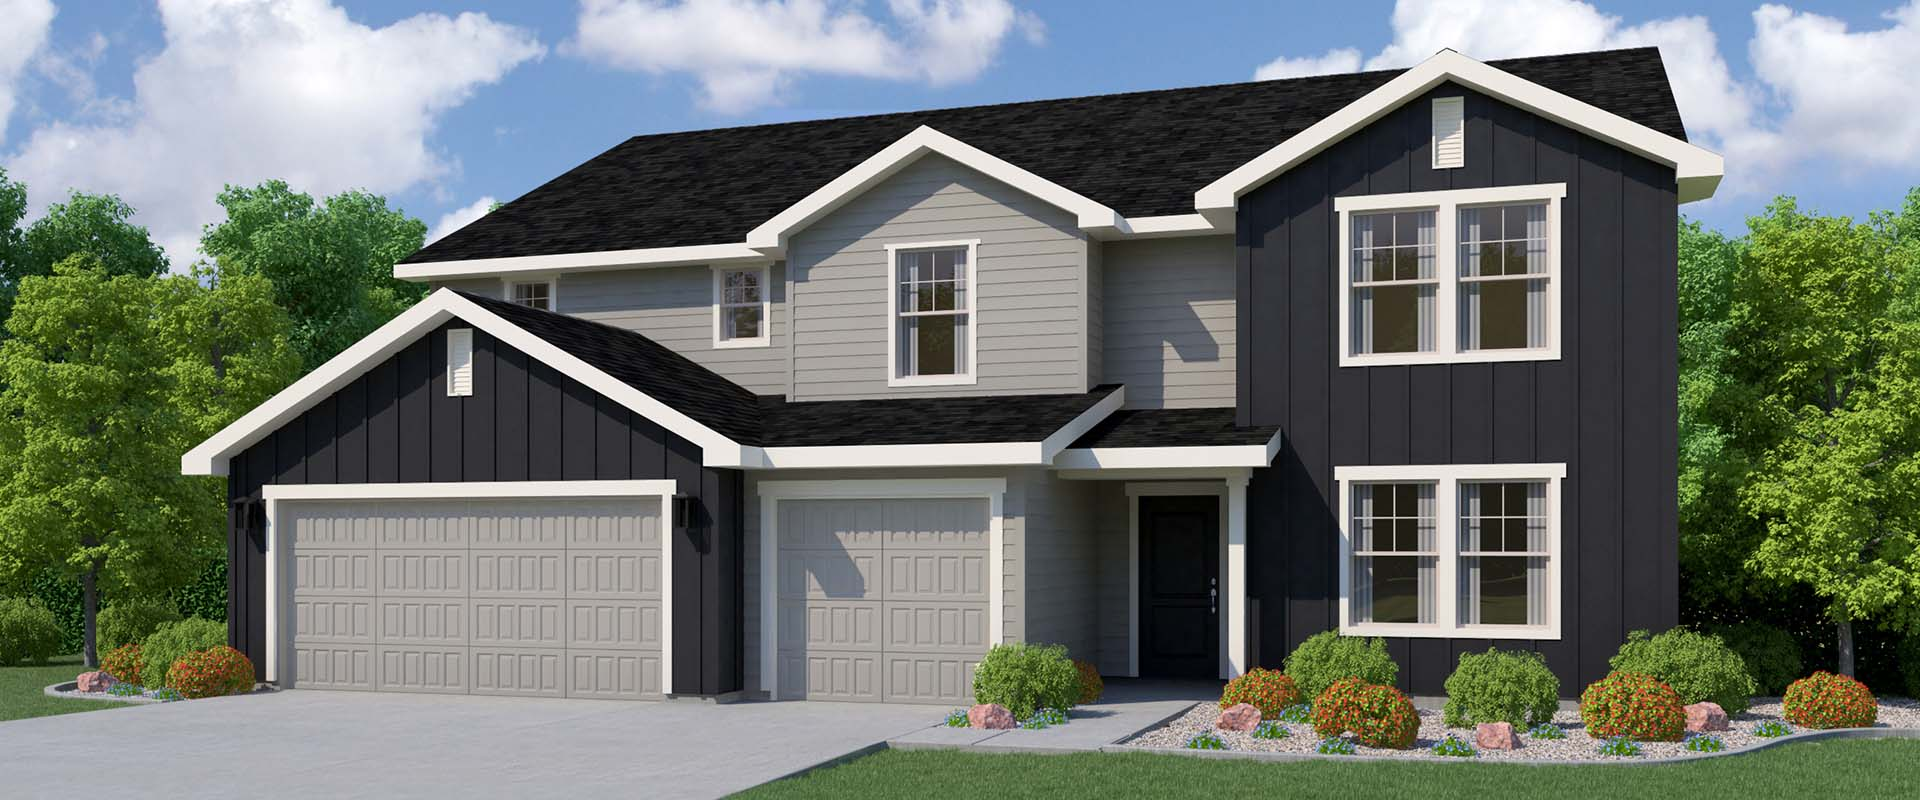 new-homes-boise-idaho-hubble-homes_0009_Topaz Traditional pack 38.jpg